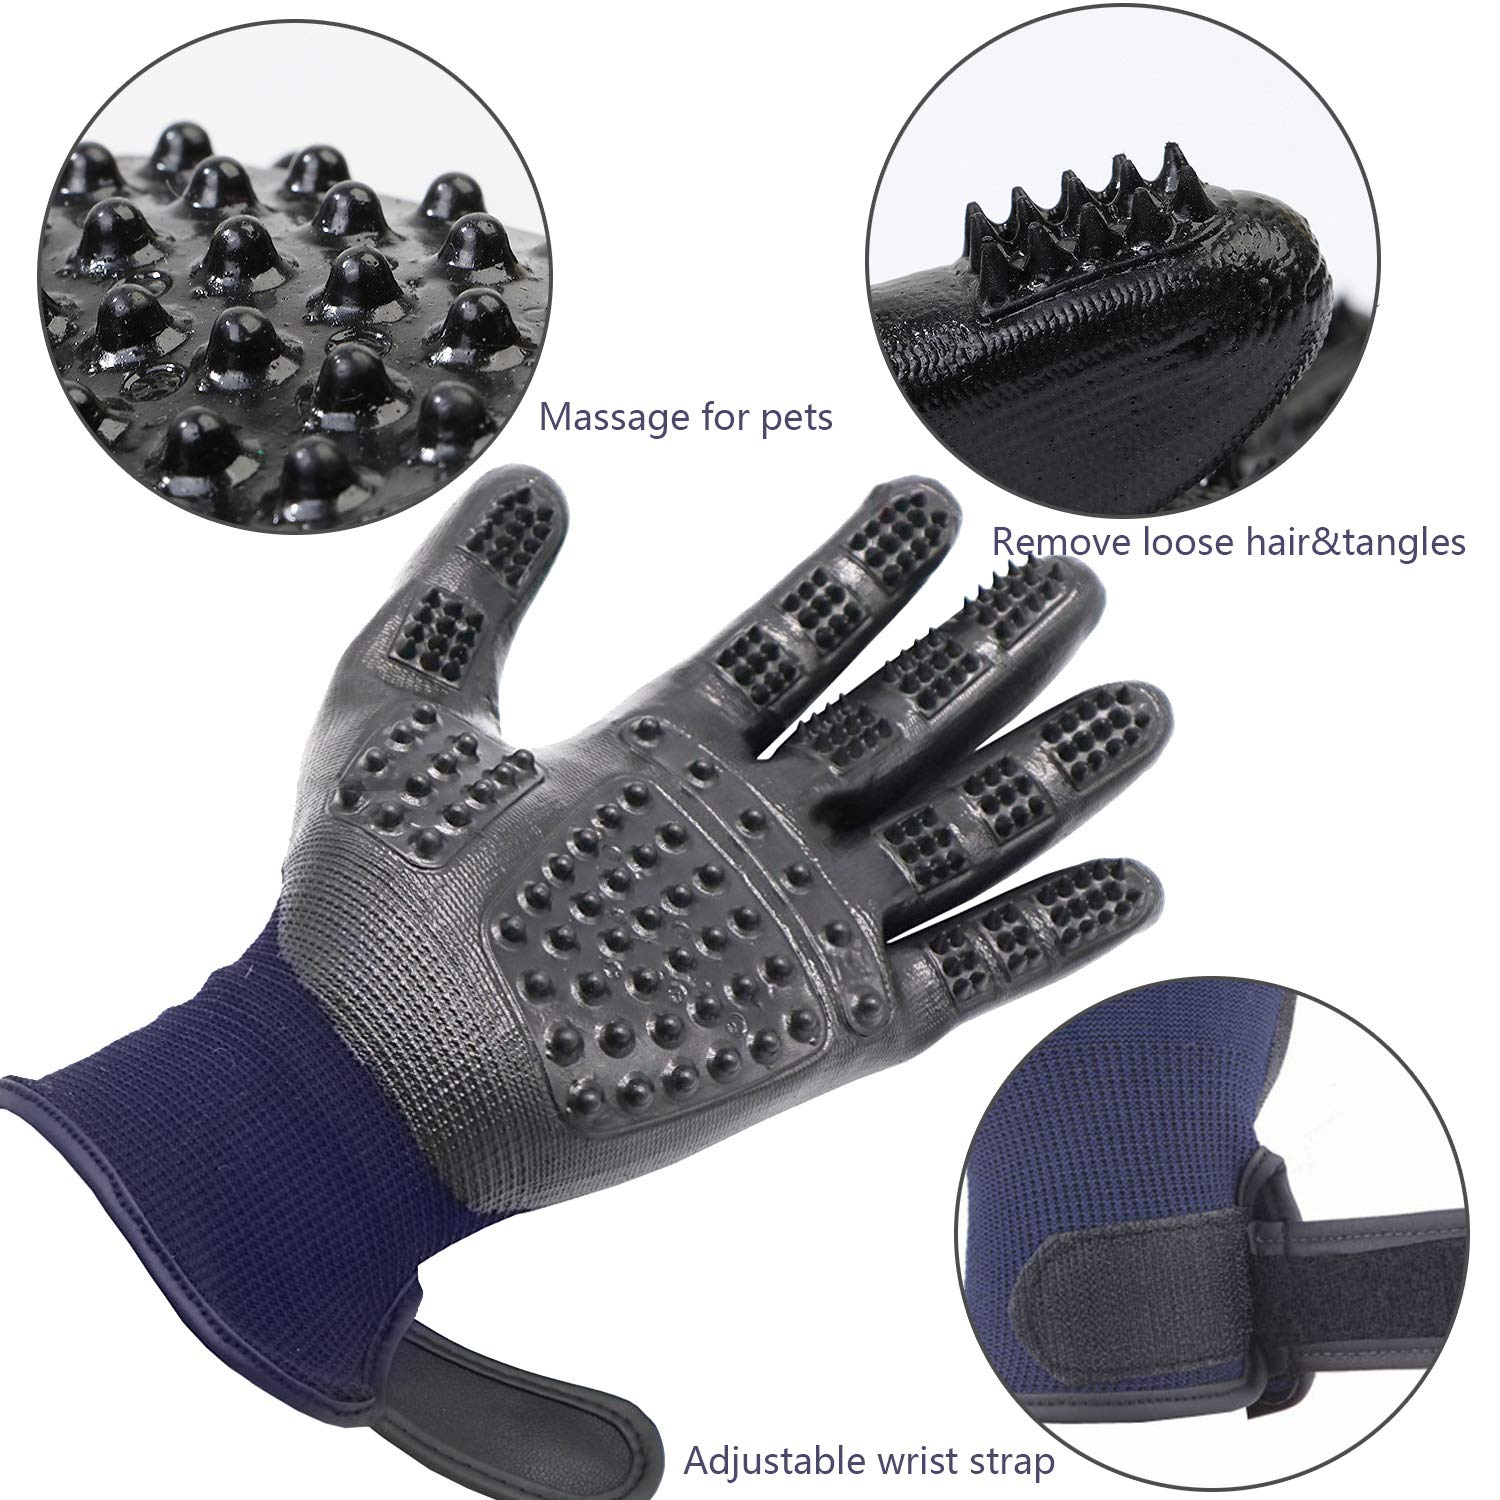 MMTX Pet Massage Gloves - 1 Pair Rubber Deshedding Brush Glove Pets Hair Remover Mitts Pet Bath Grooming Massage Tool for Cats and Dogs with Long & Short Fur by MMTX (Image #5)